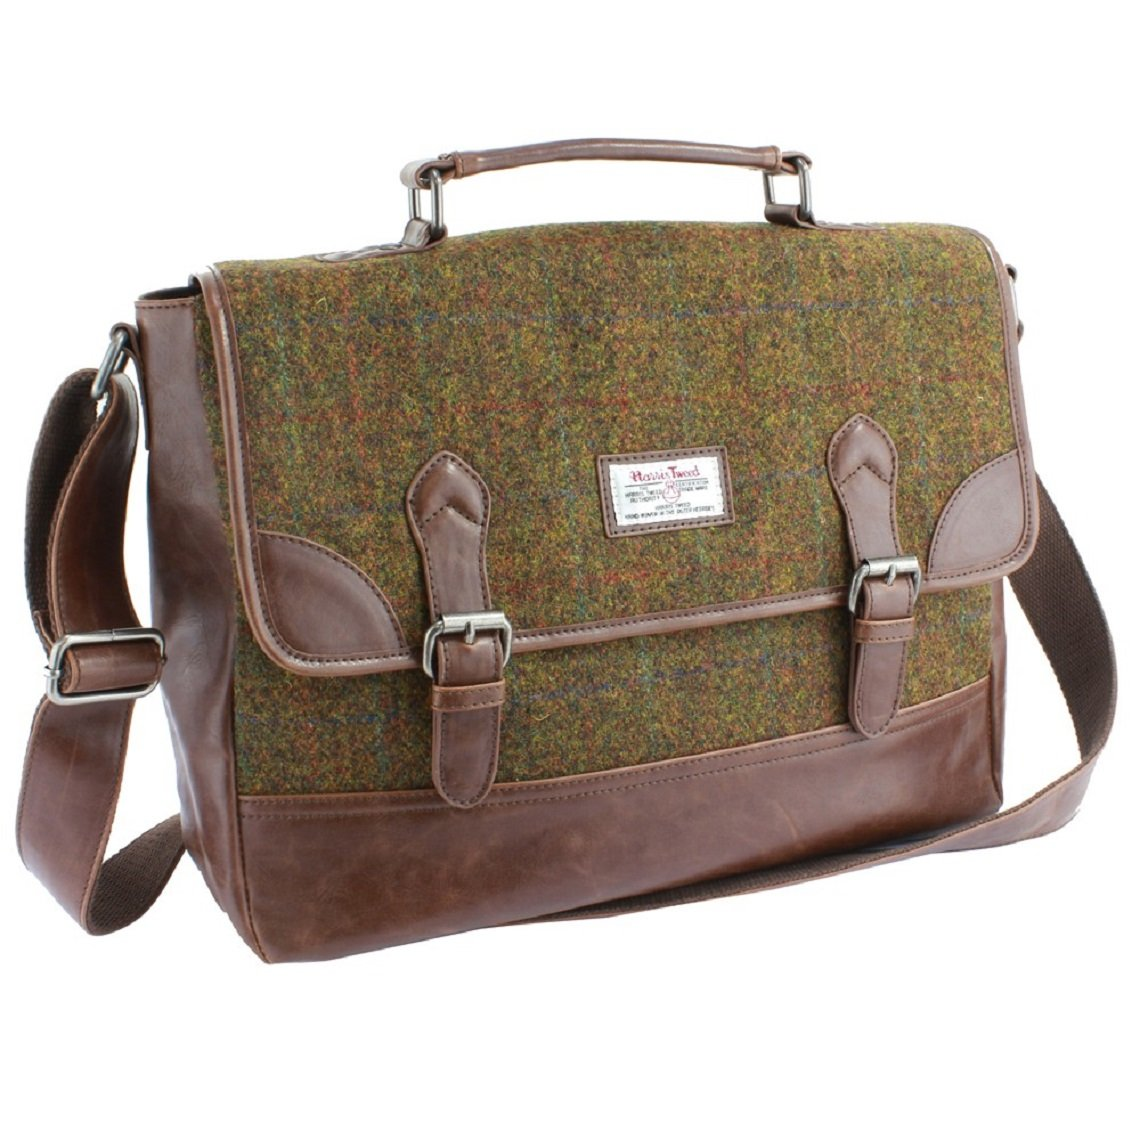 The Stornoway Harris Tweed Brown/Green Briefcase